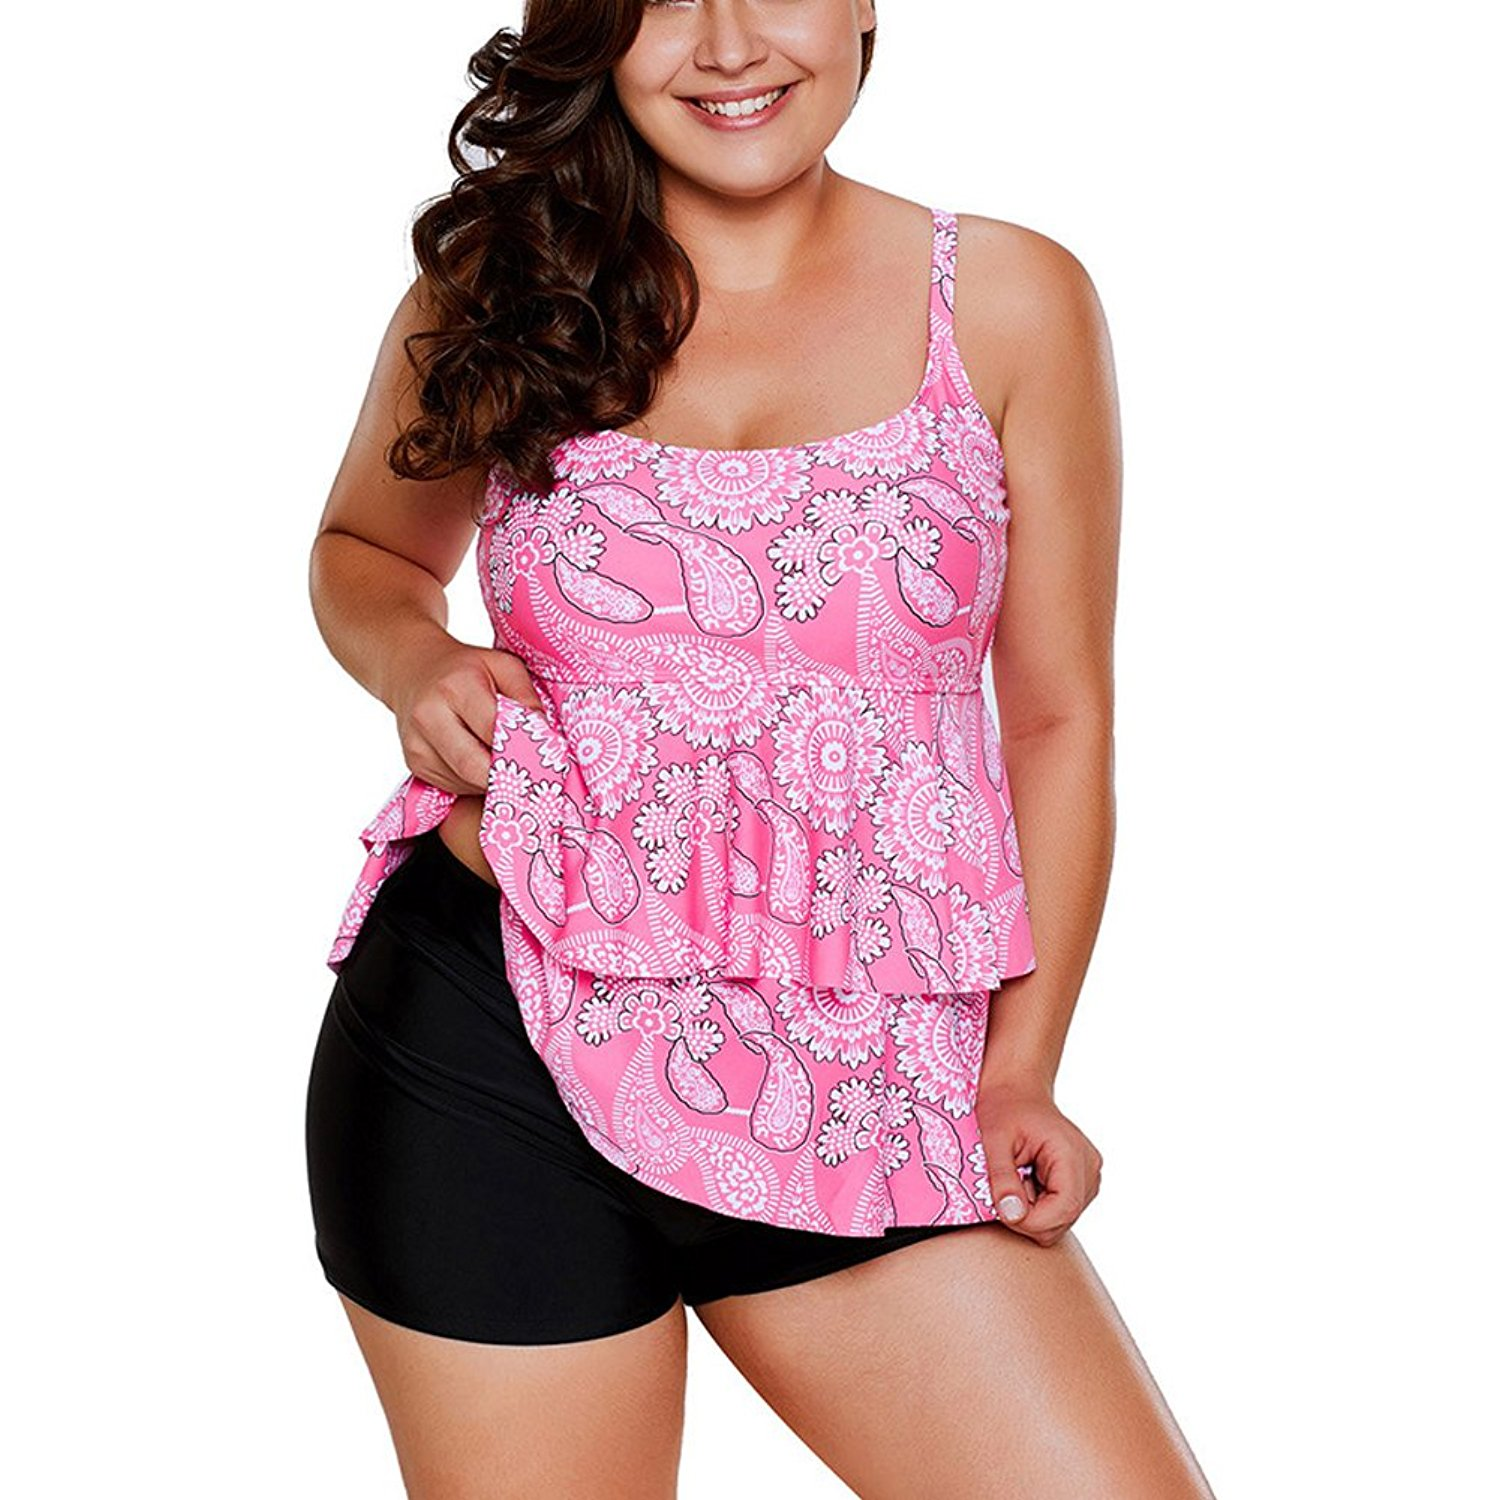 06aca14cced5a Get Quotations · SYBKNSTW Two Piece Womens Swimsuits Plus Size Tankini Set  A-Tops with Bottom Printed Swimwear